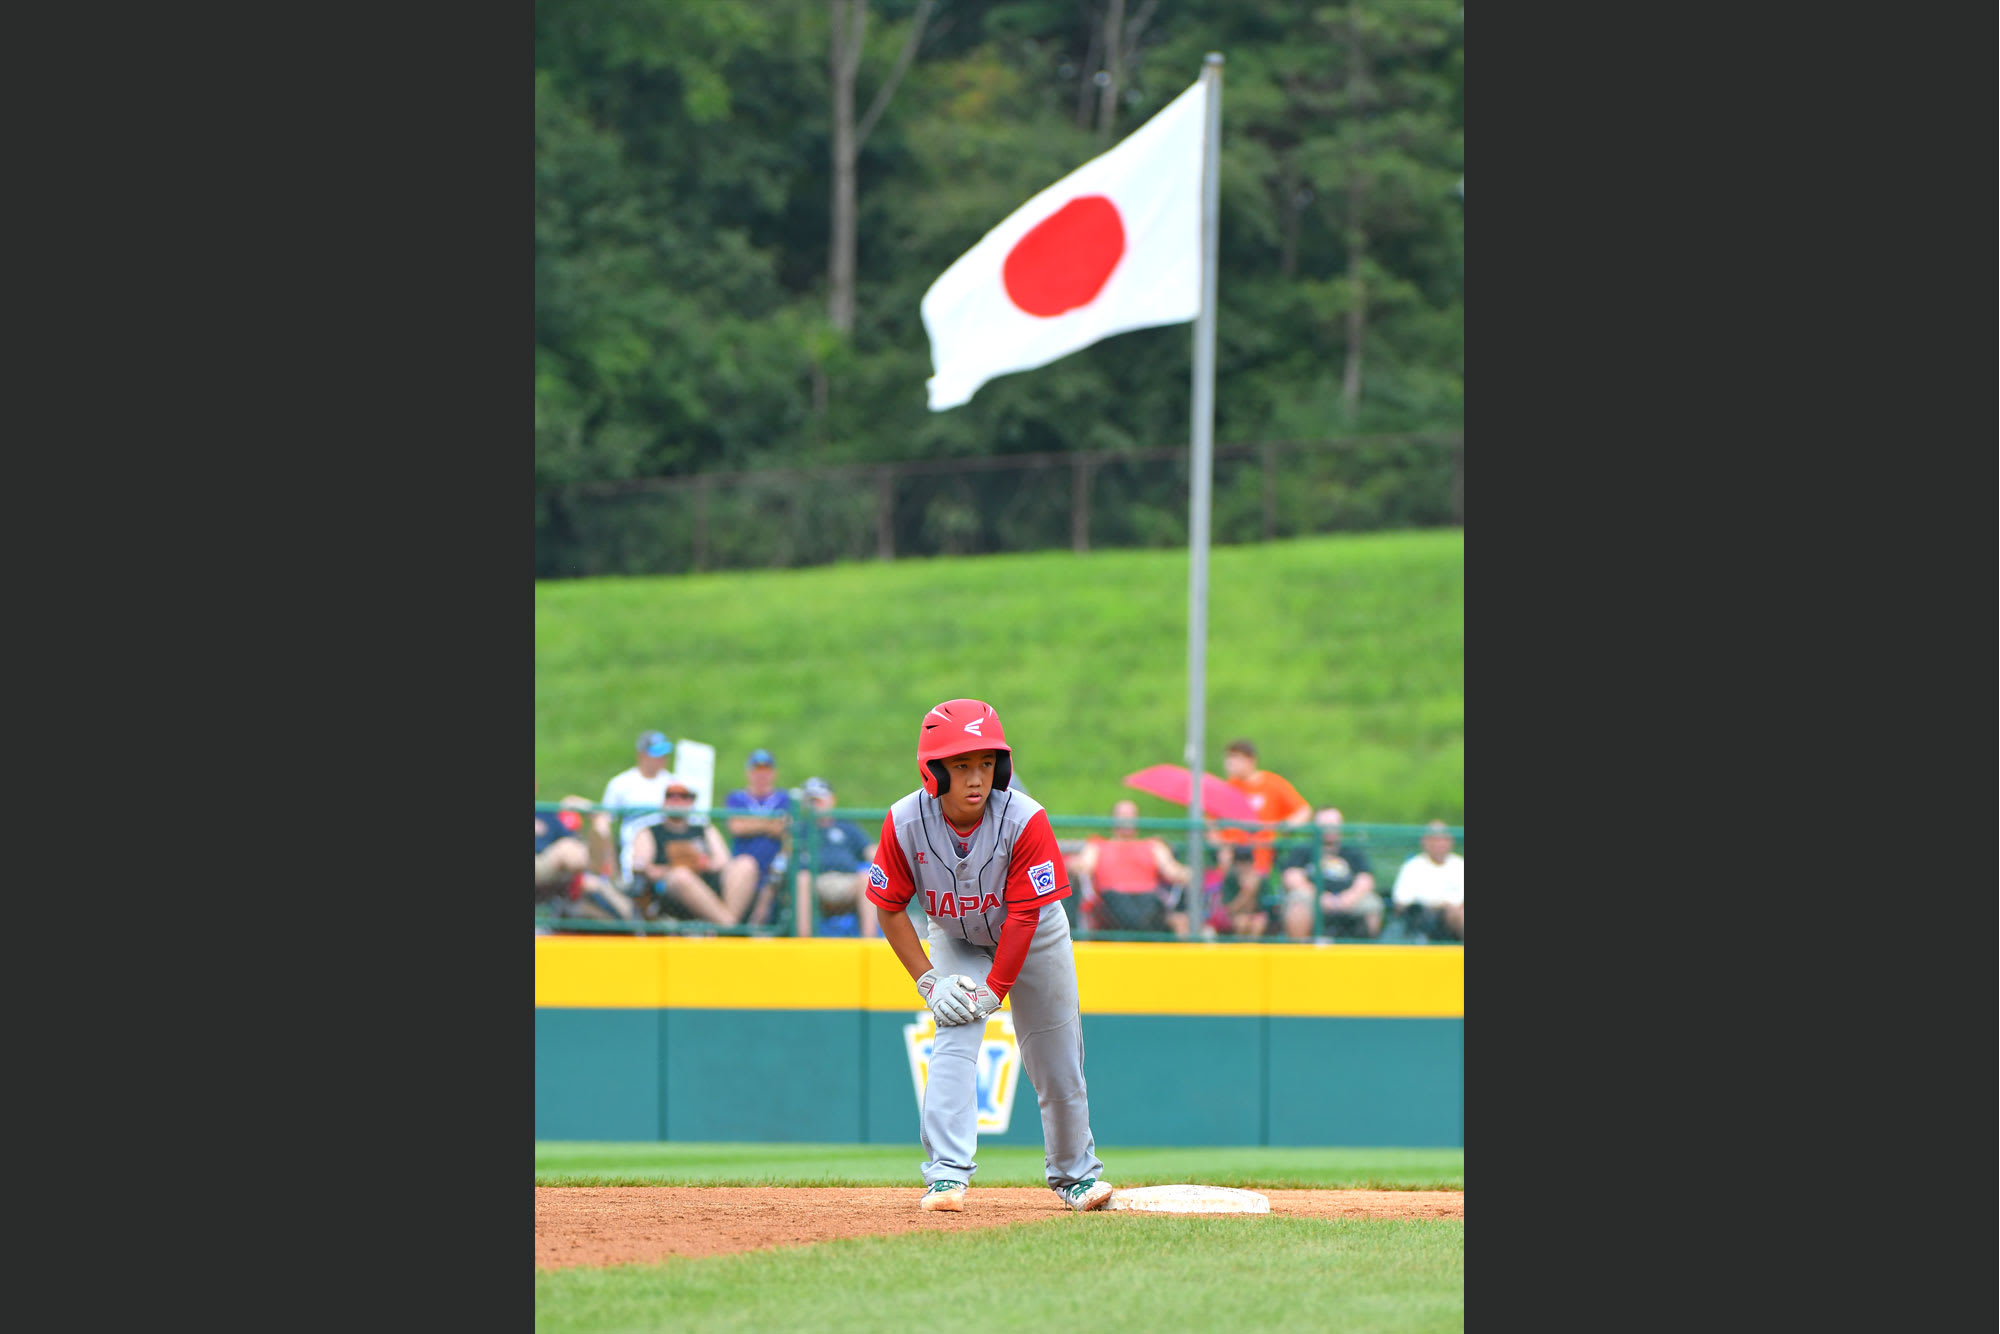 japan runner on second